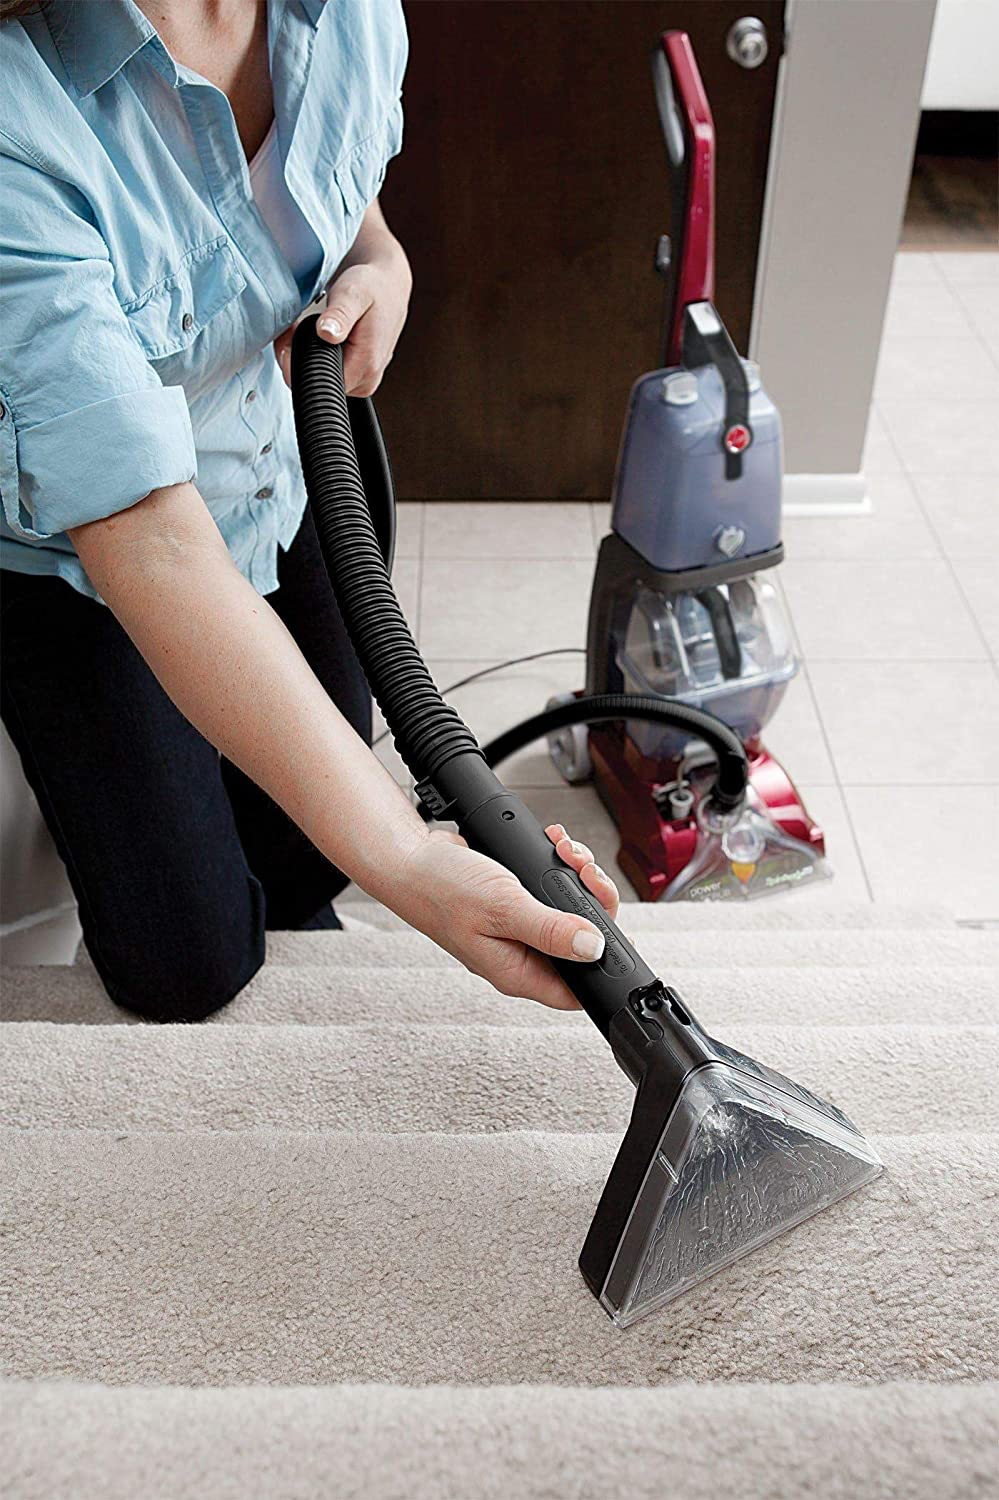 Best Portable Carpet Cleaner 2020 – Reviews & Buying Guide!